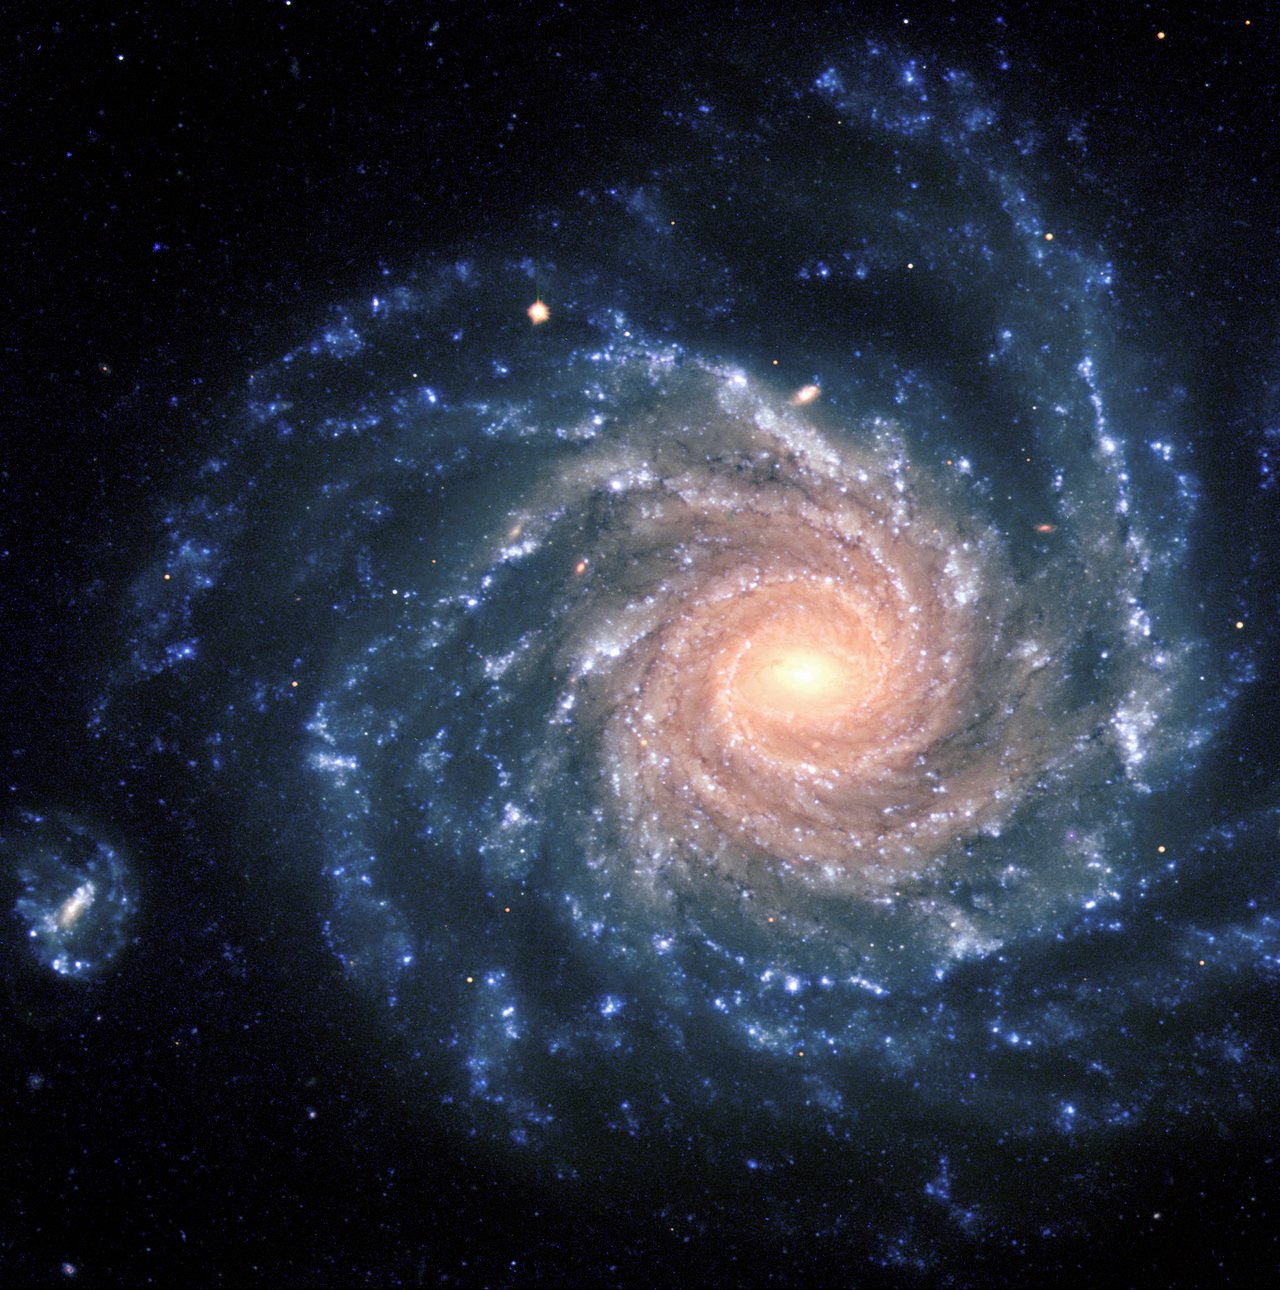 Mounted image 140: Spiral galaxy NGC 1232